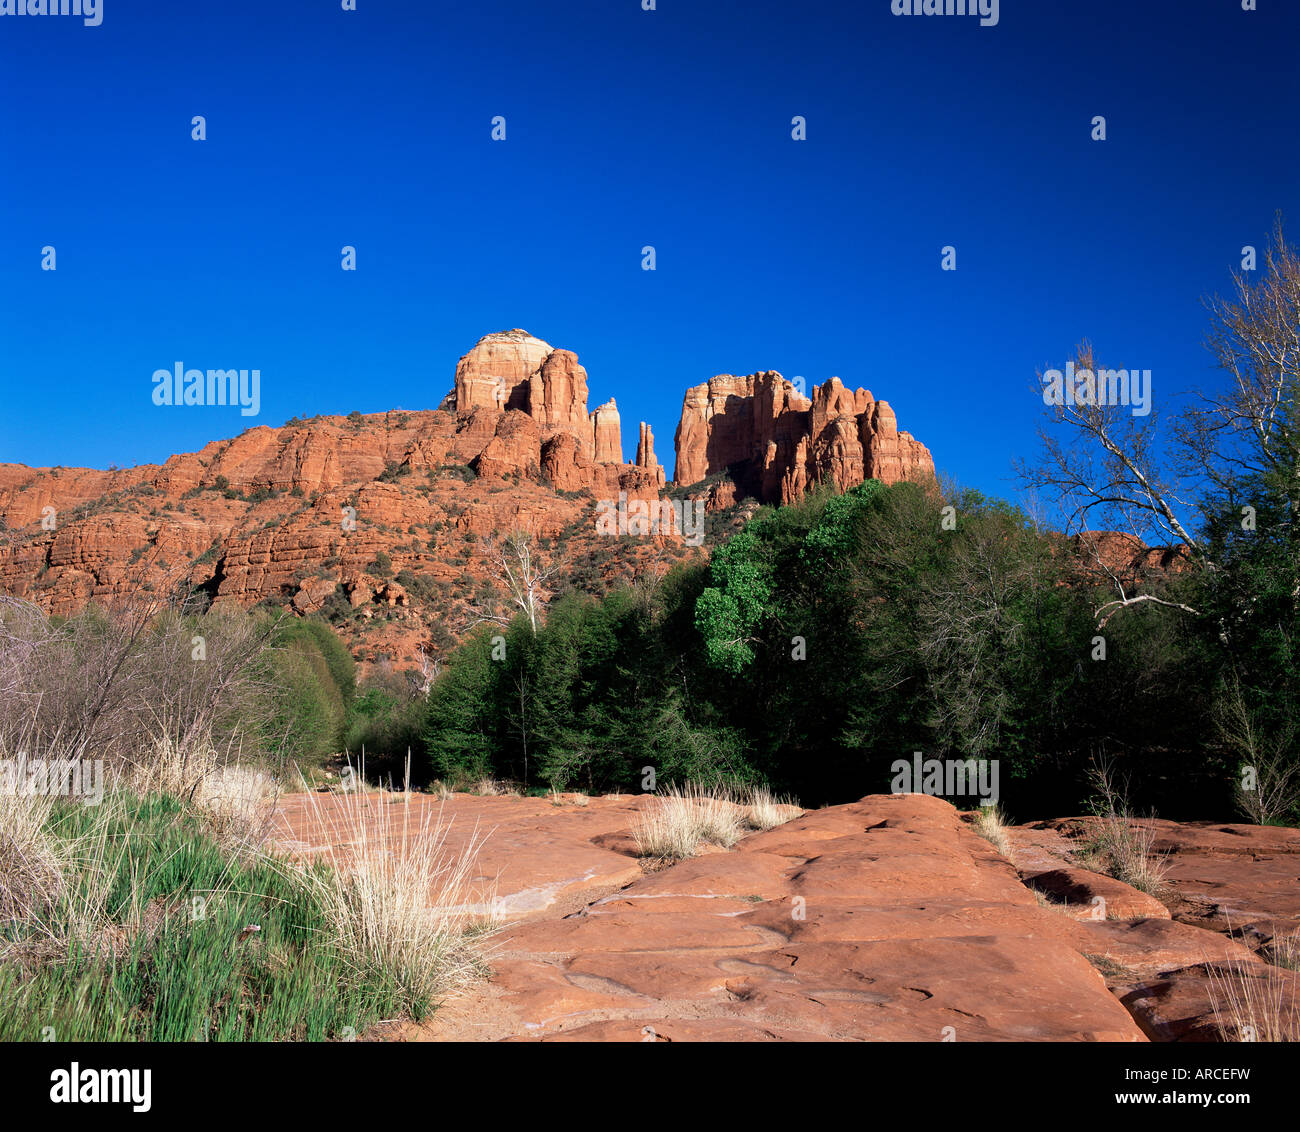 Cathedral Rock, considered a vortex by New Age metaphysicists, in the evening light, Sedona, Arizona, USA - Stock Image